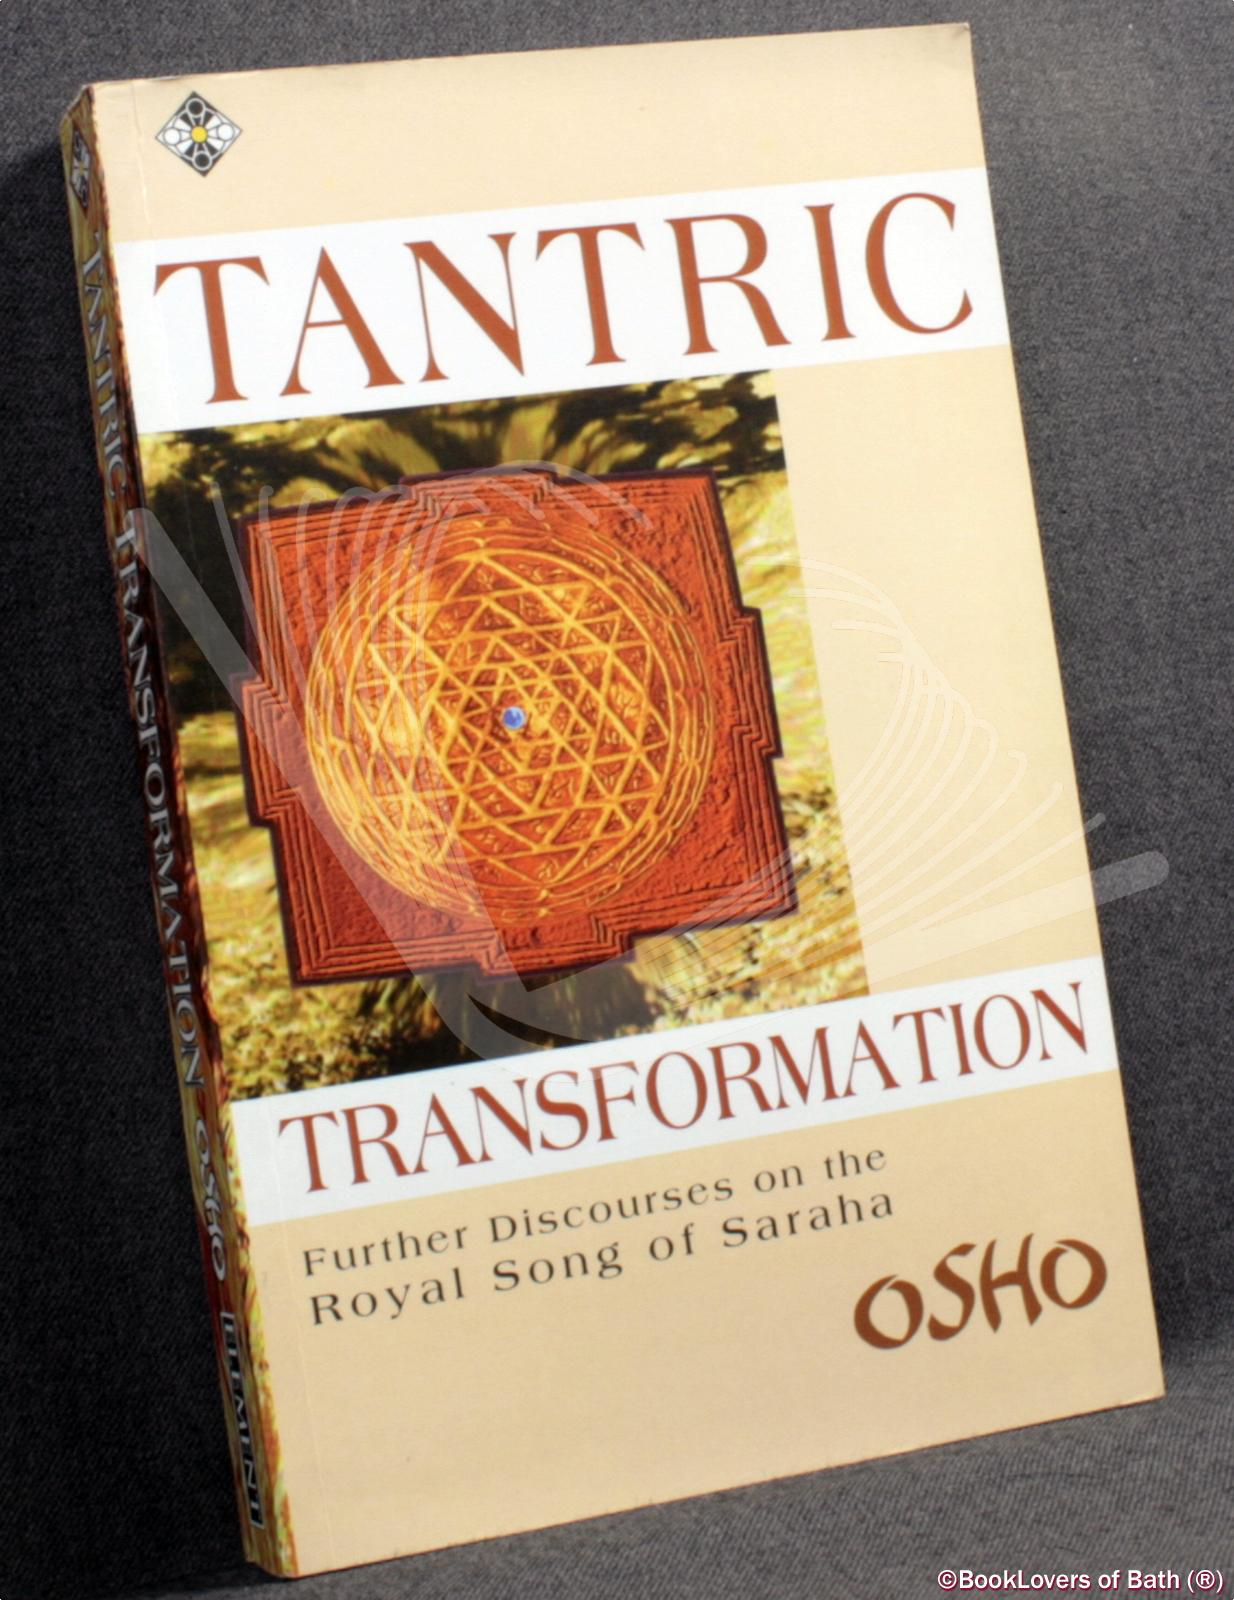 Tantric Transformation: Further Discourses on the Royal Song of Saraha - Osho